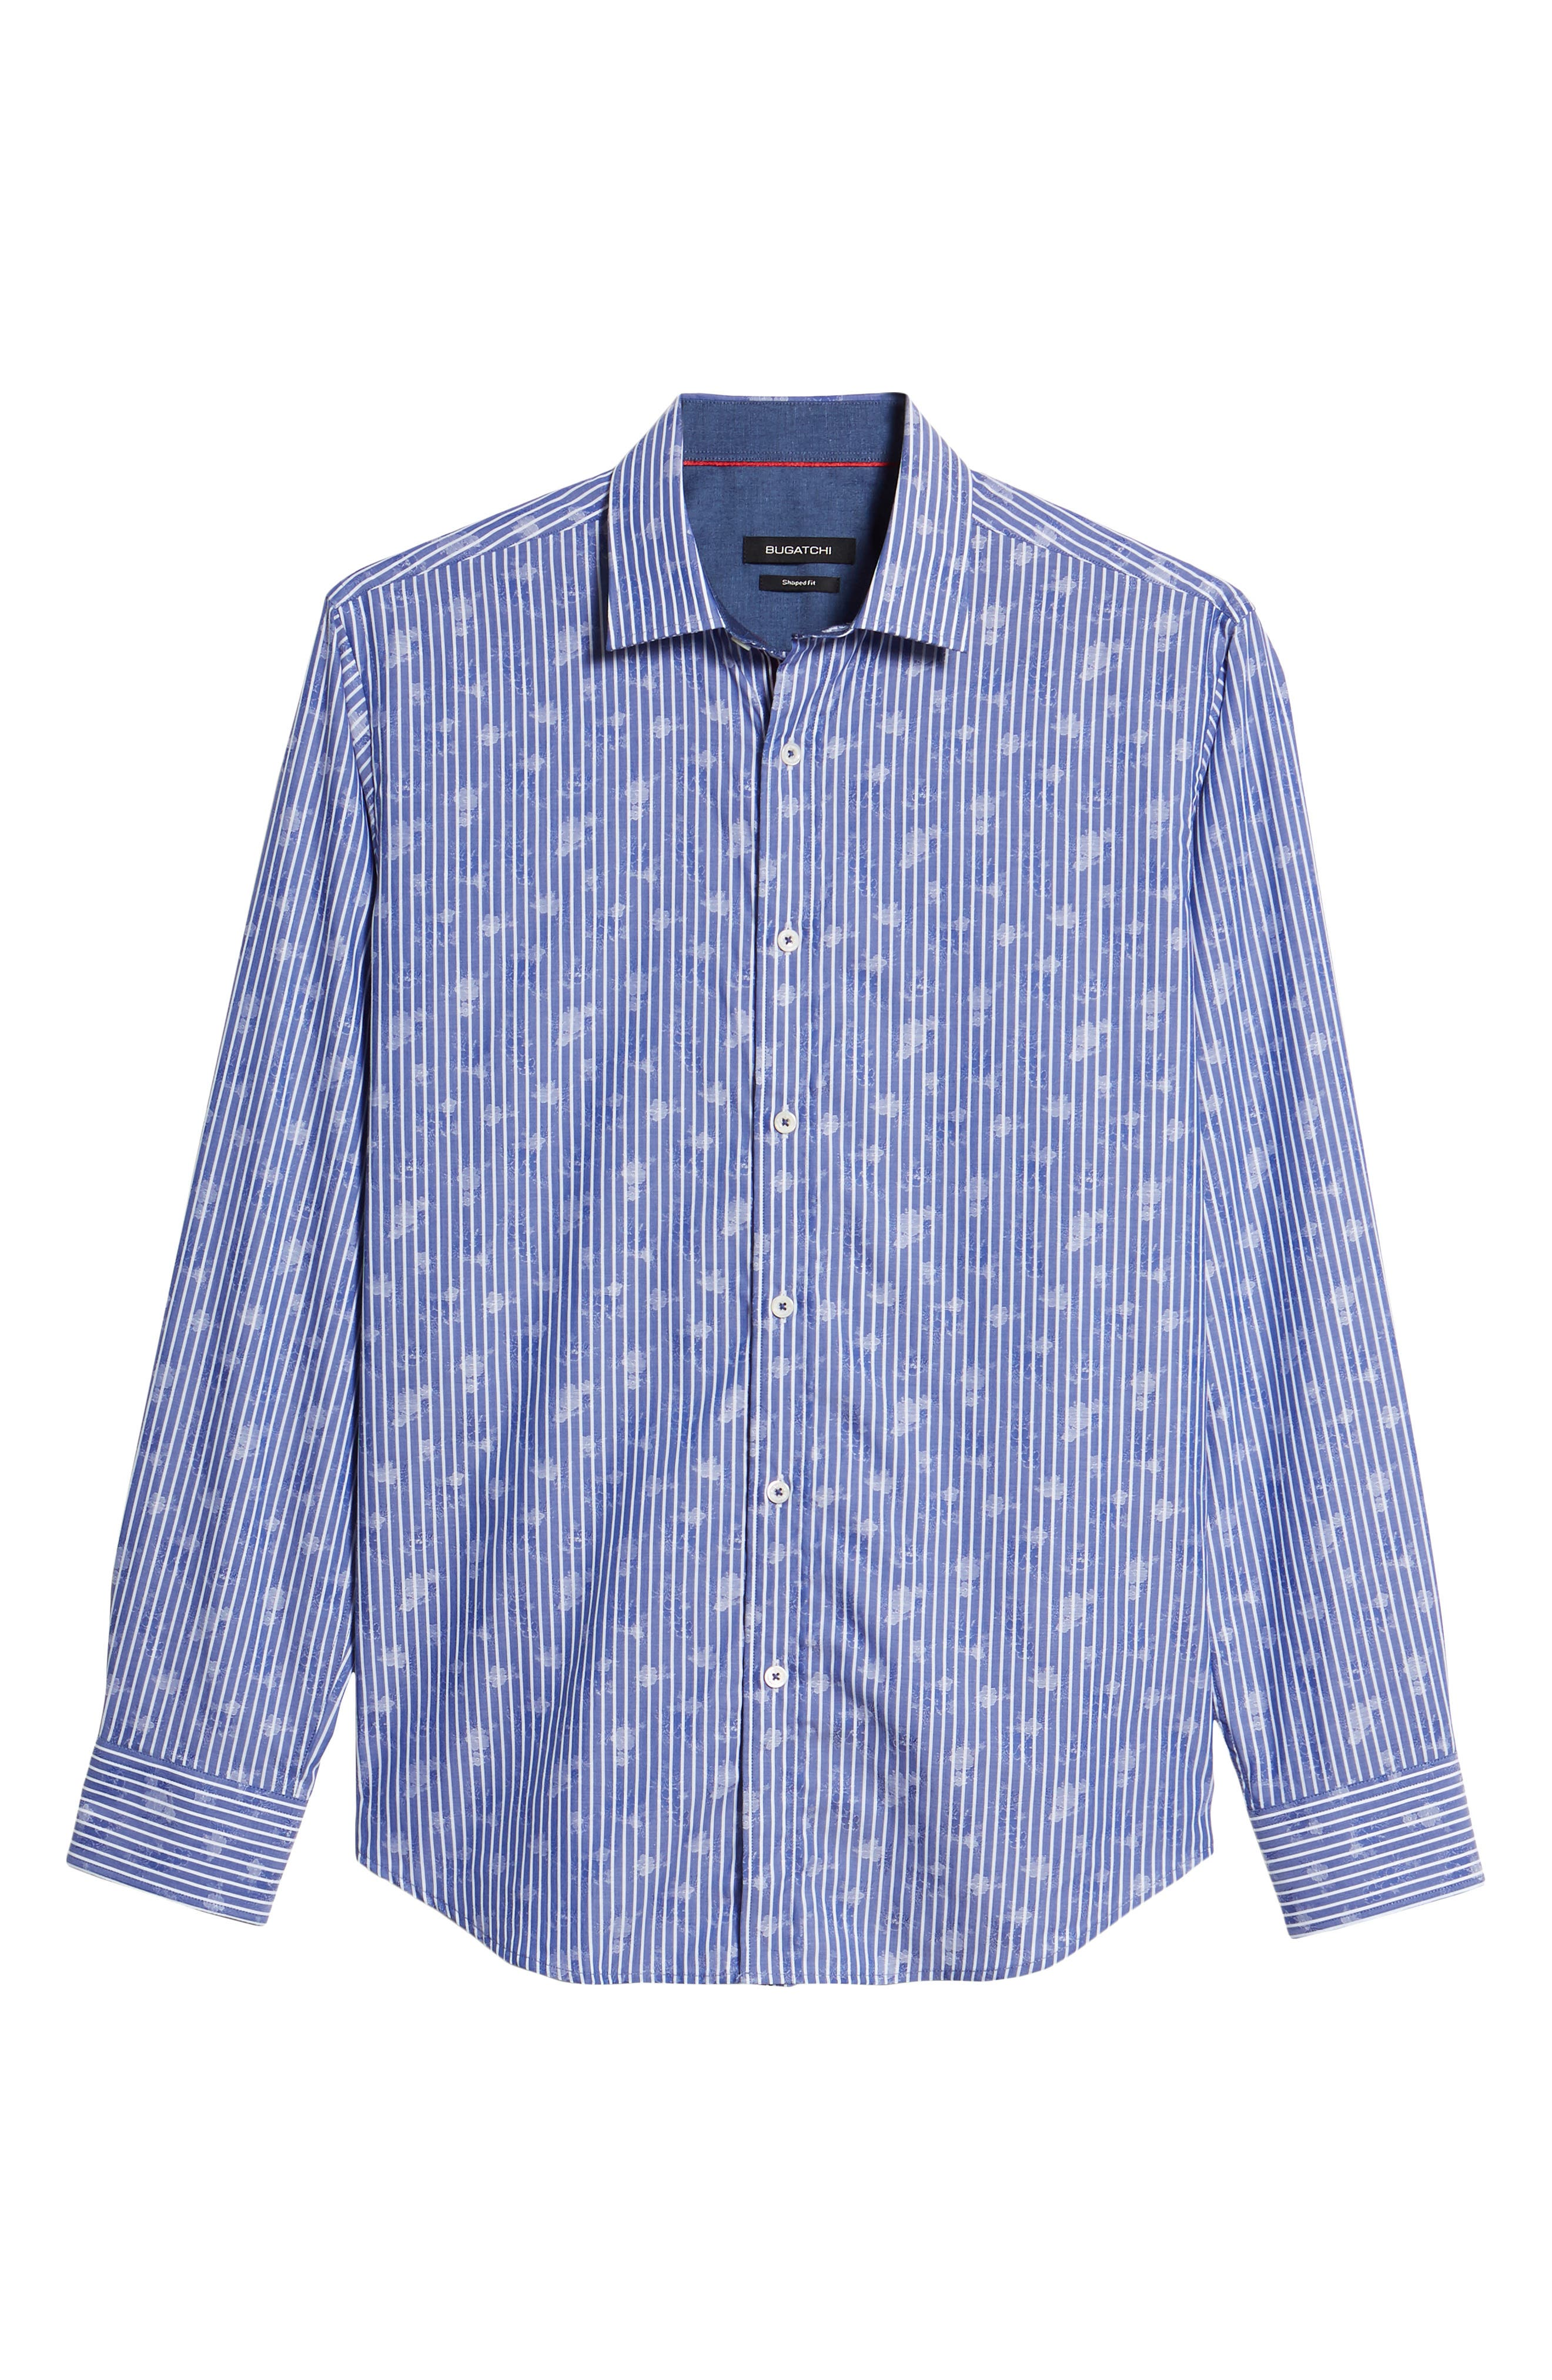 Shaped Fit Layered Print Sport Shirt,                             Alternate thumbnail 6, color,                             Navy